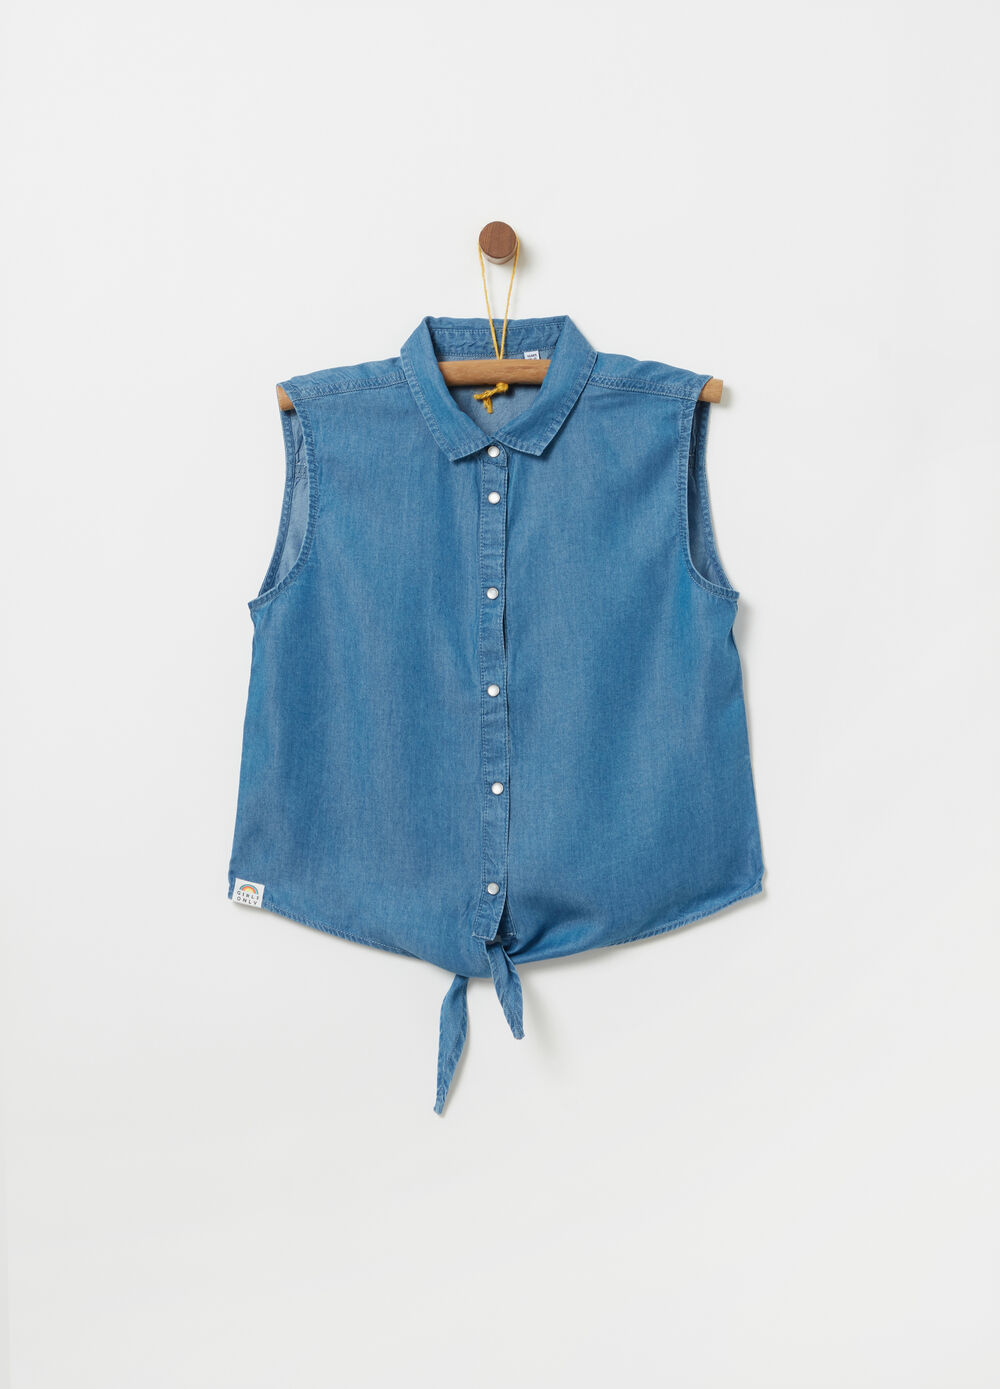 Sleeveless shirt in 100% lyocell with knot